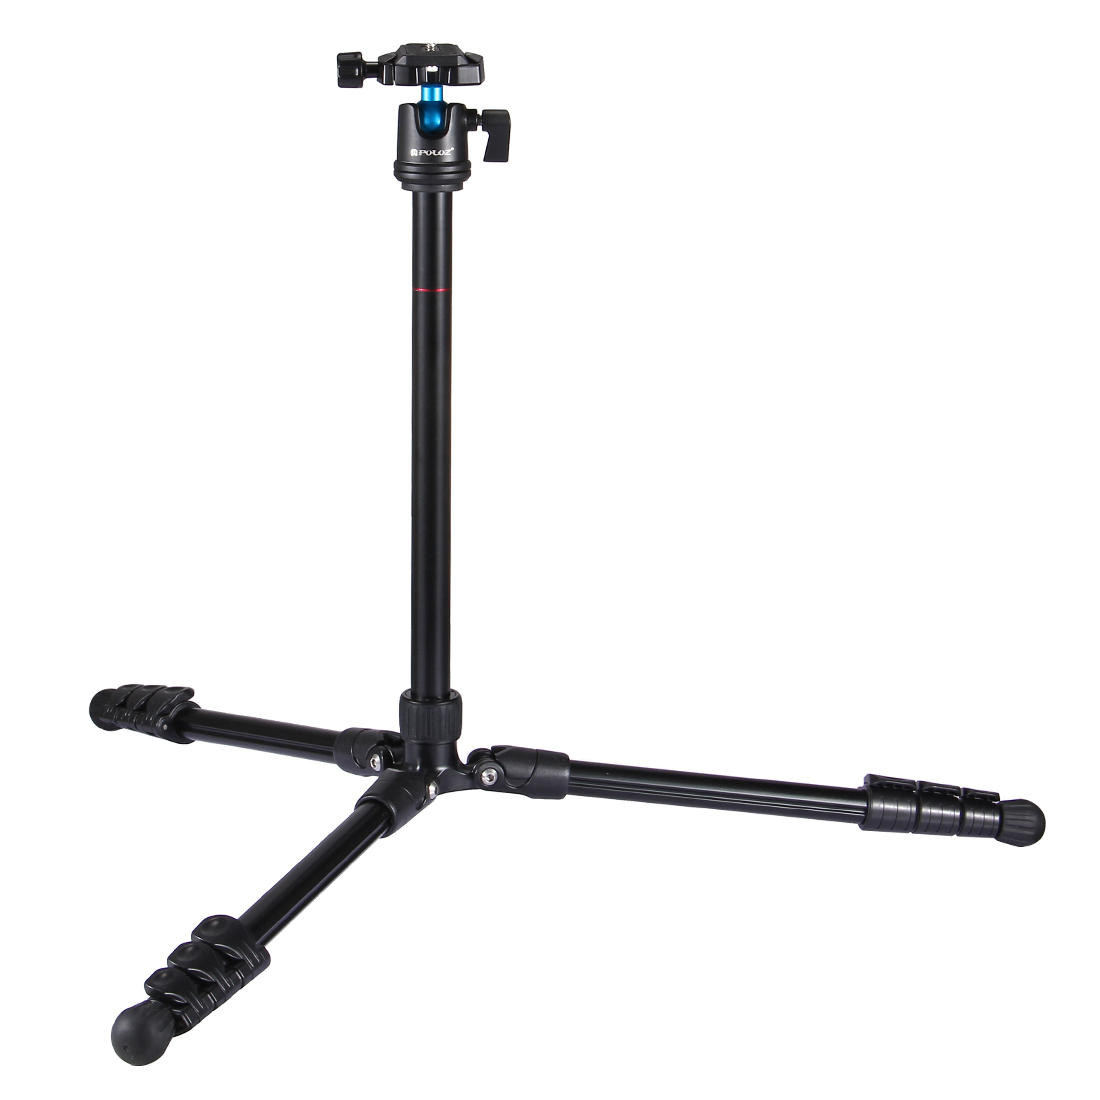 PULUZ PU3009 4-Section Folding Legs Metal Tripod Mount with 360 Degree Ball Head for DSLR - 3